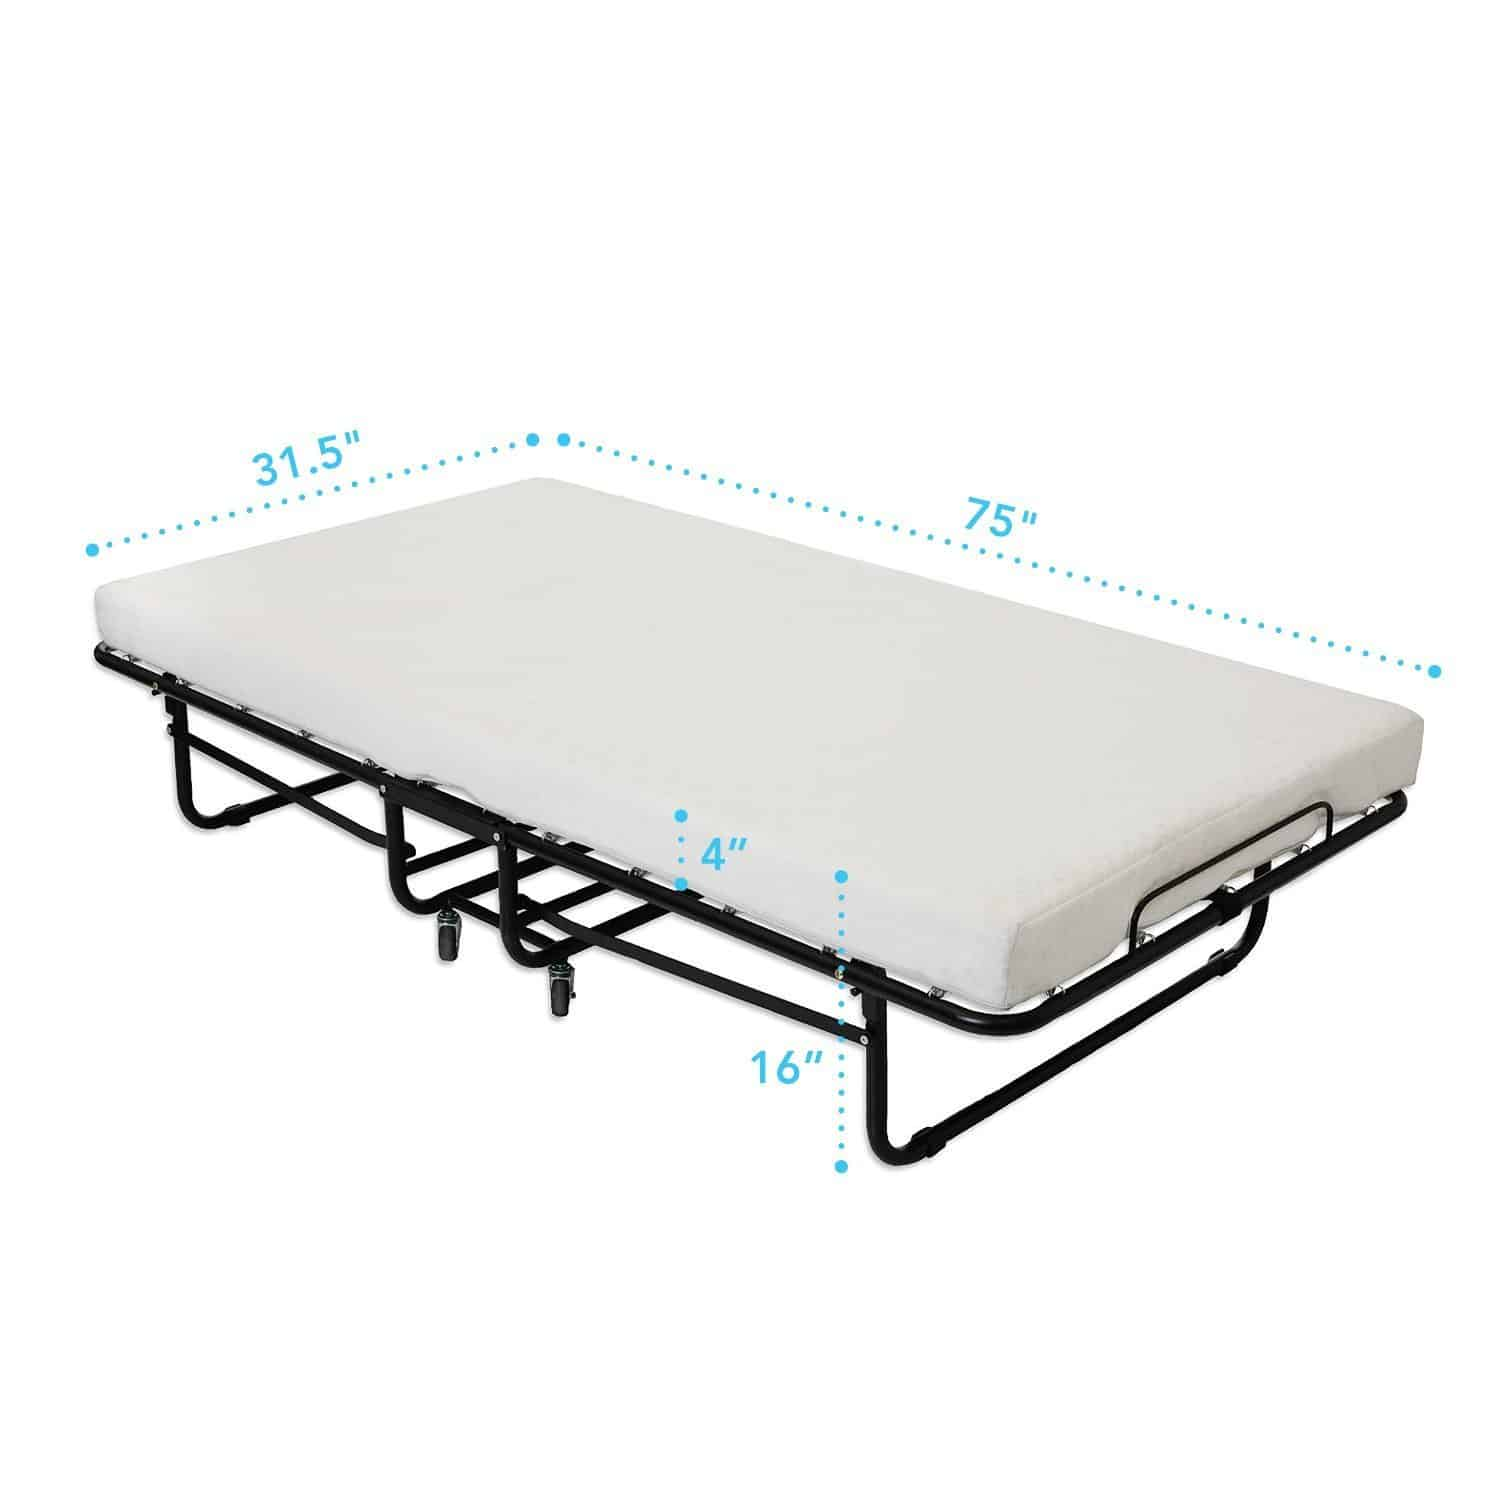 Best Fold Up Beds For Small Spaces Best For Small Spaces